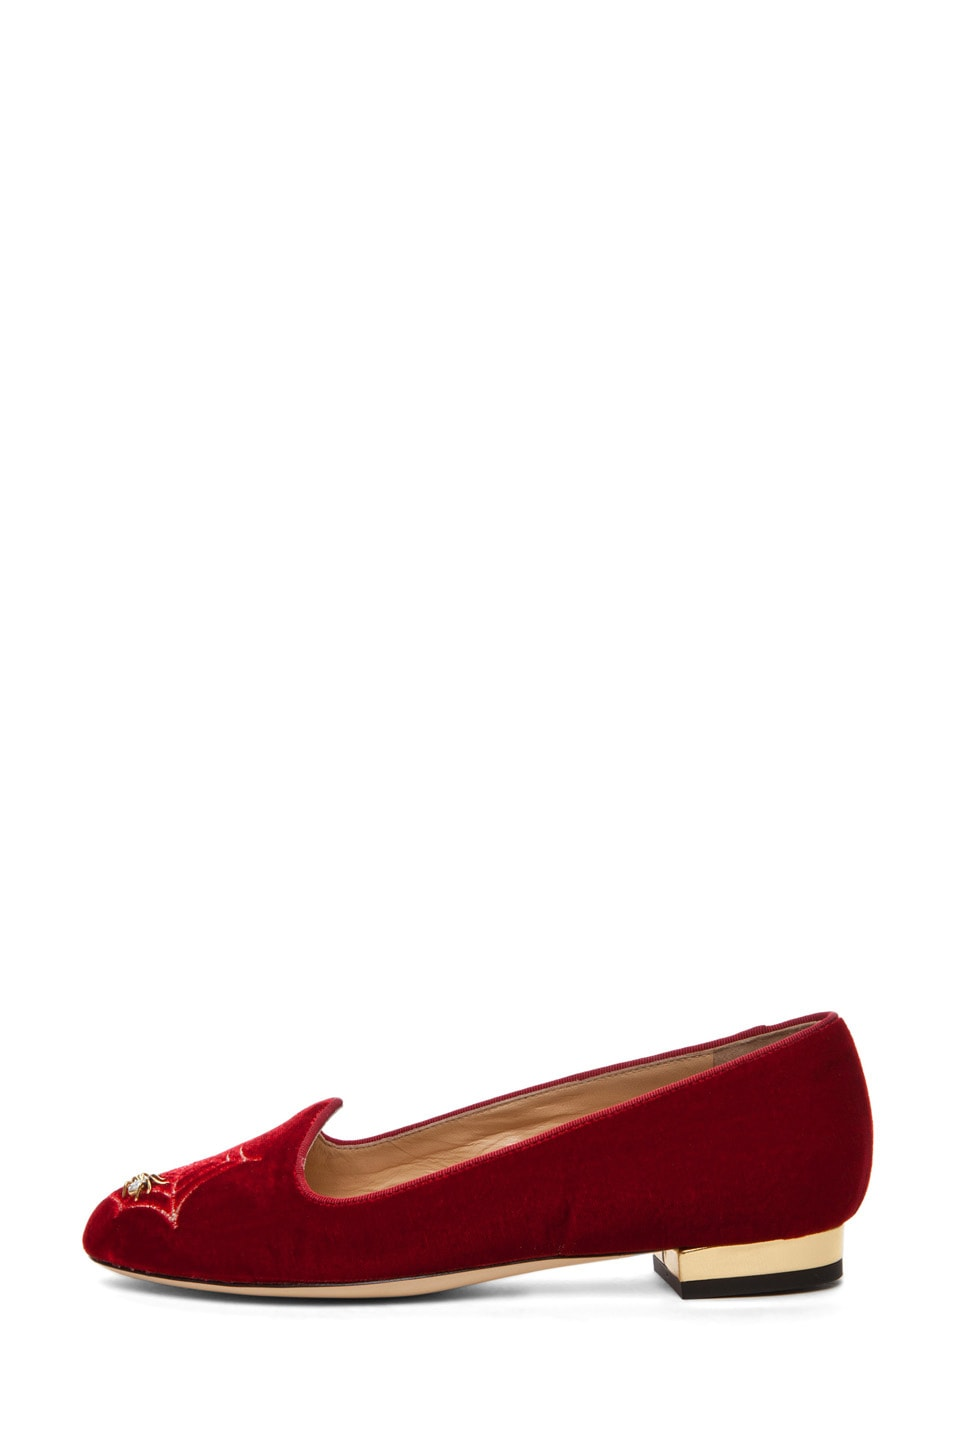 Image 1 of Charlotte Olympia Charlotte's Web Smoking Slipper with Crystal Detailing in Red